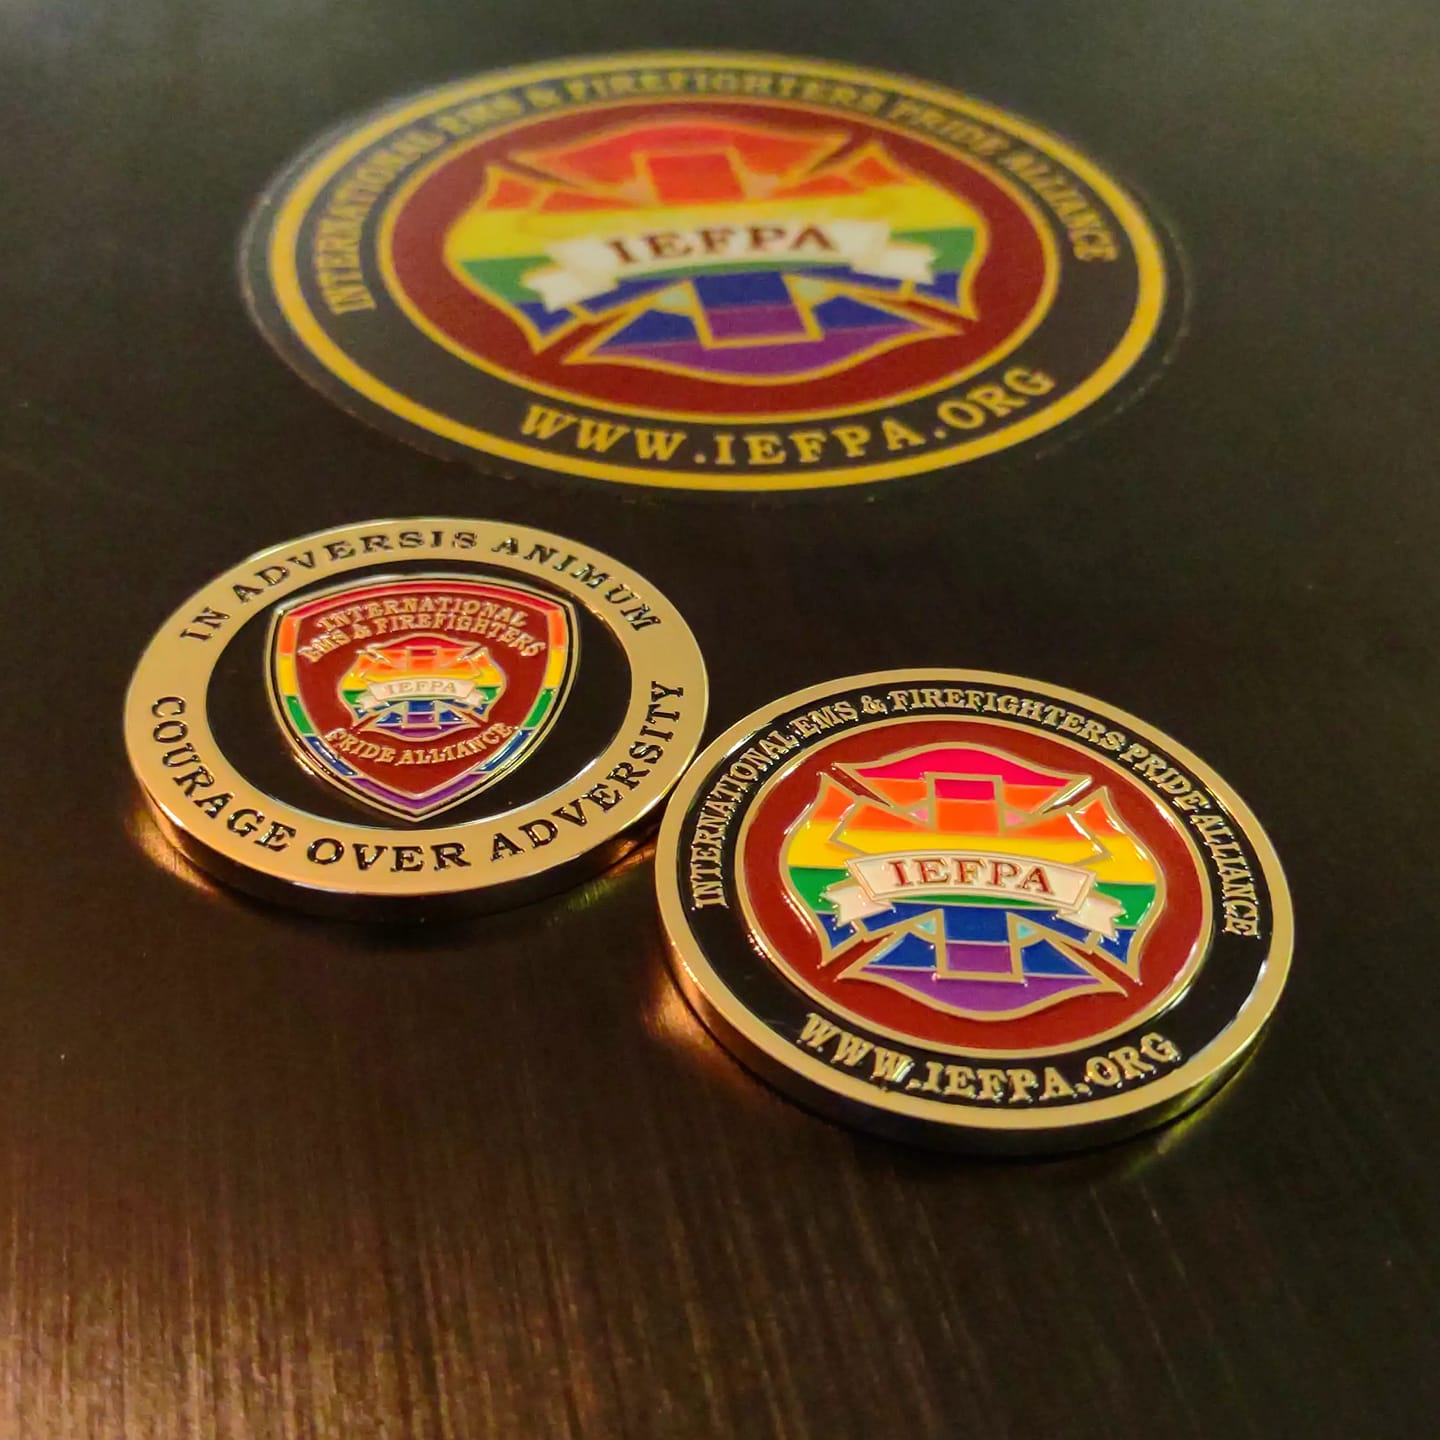 IEFPA Challenge Coin